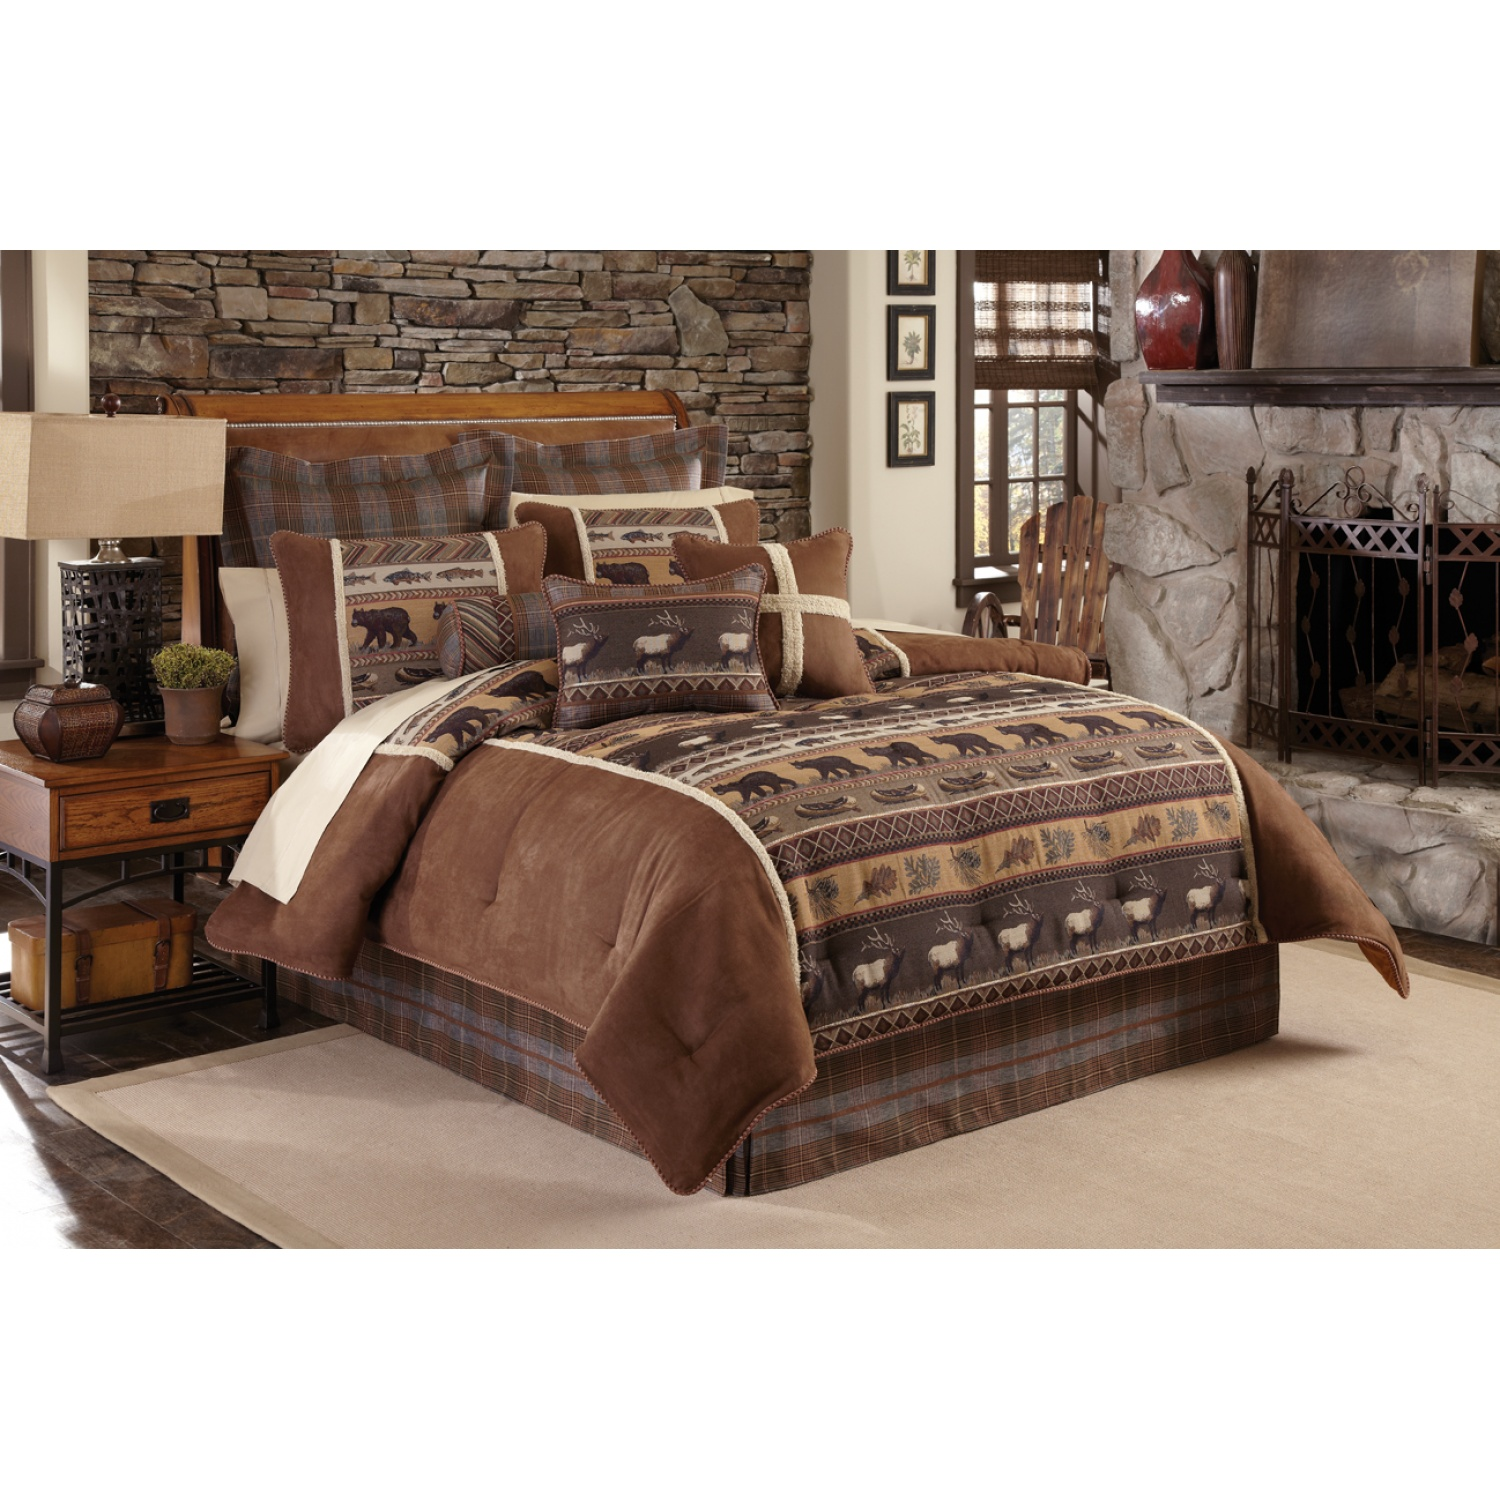 Attractive queen size comforter sets for bedroom design with cheap queen size comforter sets